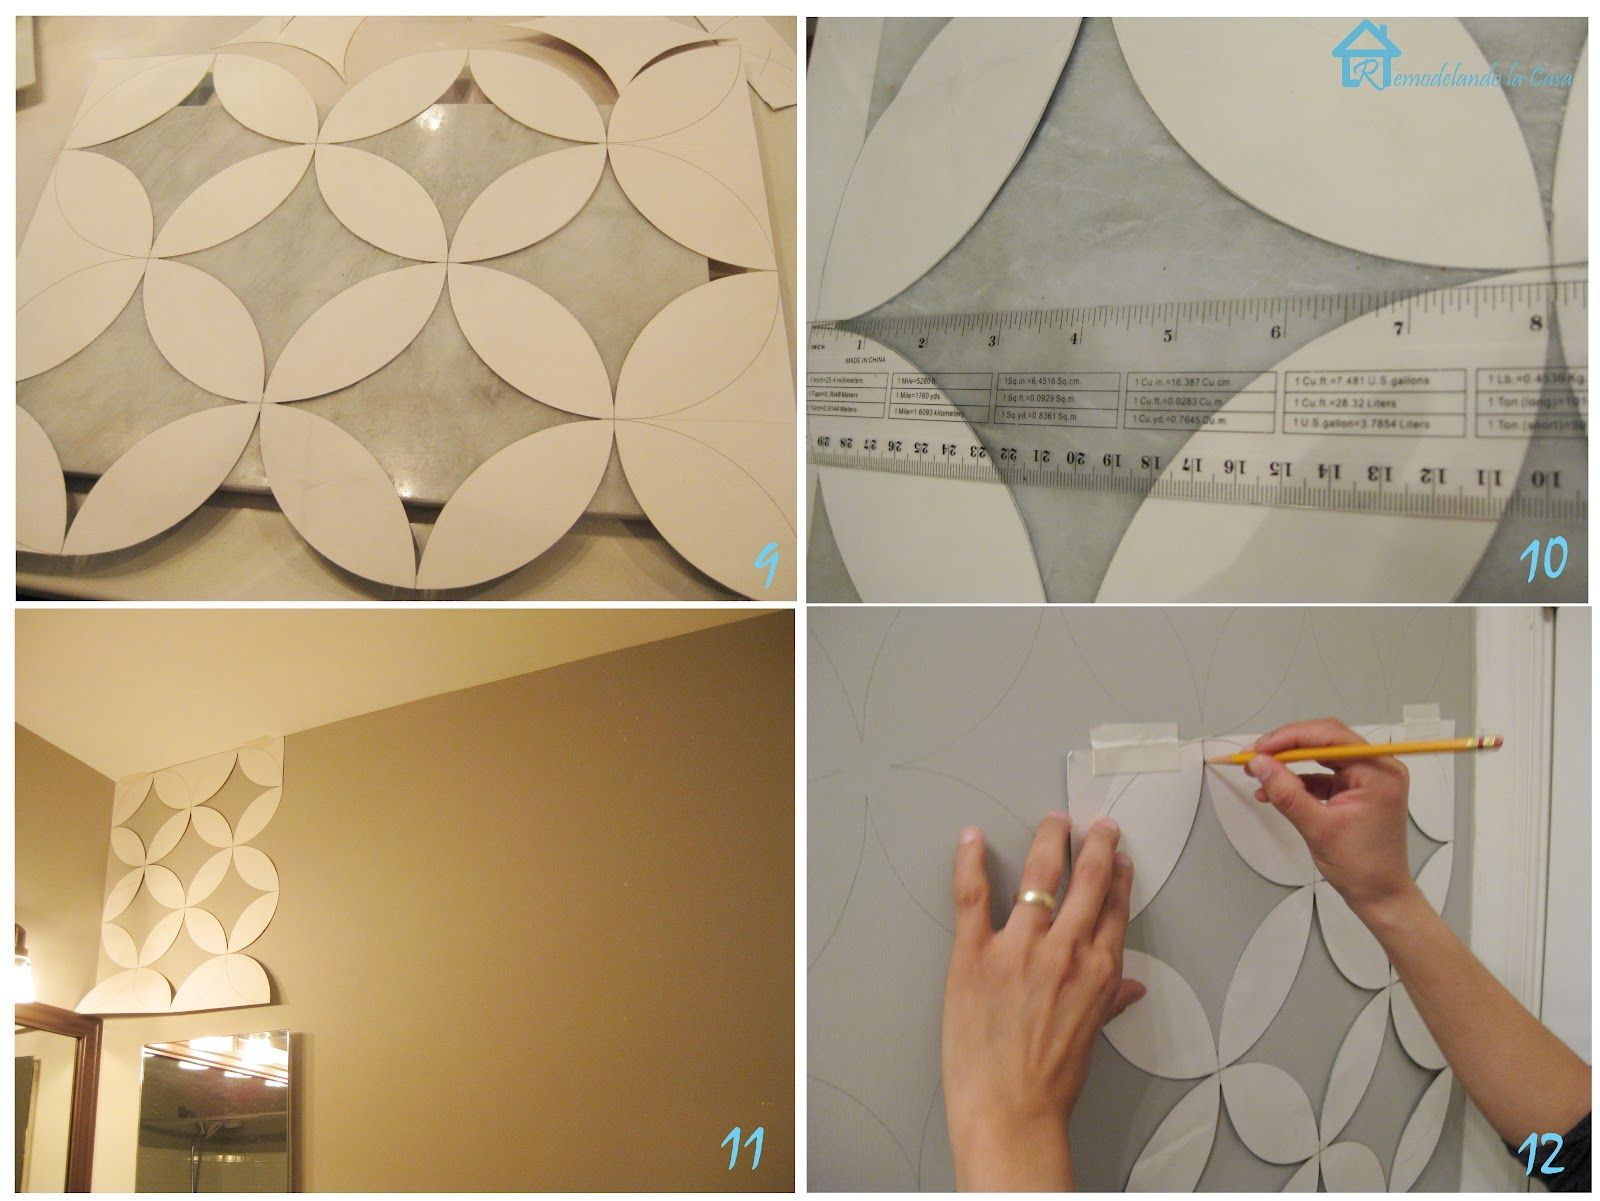 Free Printable Wall Stencils | With The Cut Out Pieces It Was Easier - Free Printable Wall Stencils For Painting